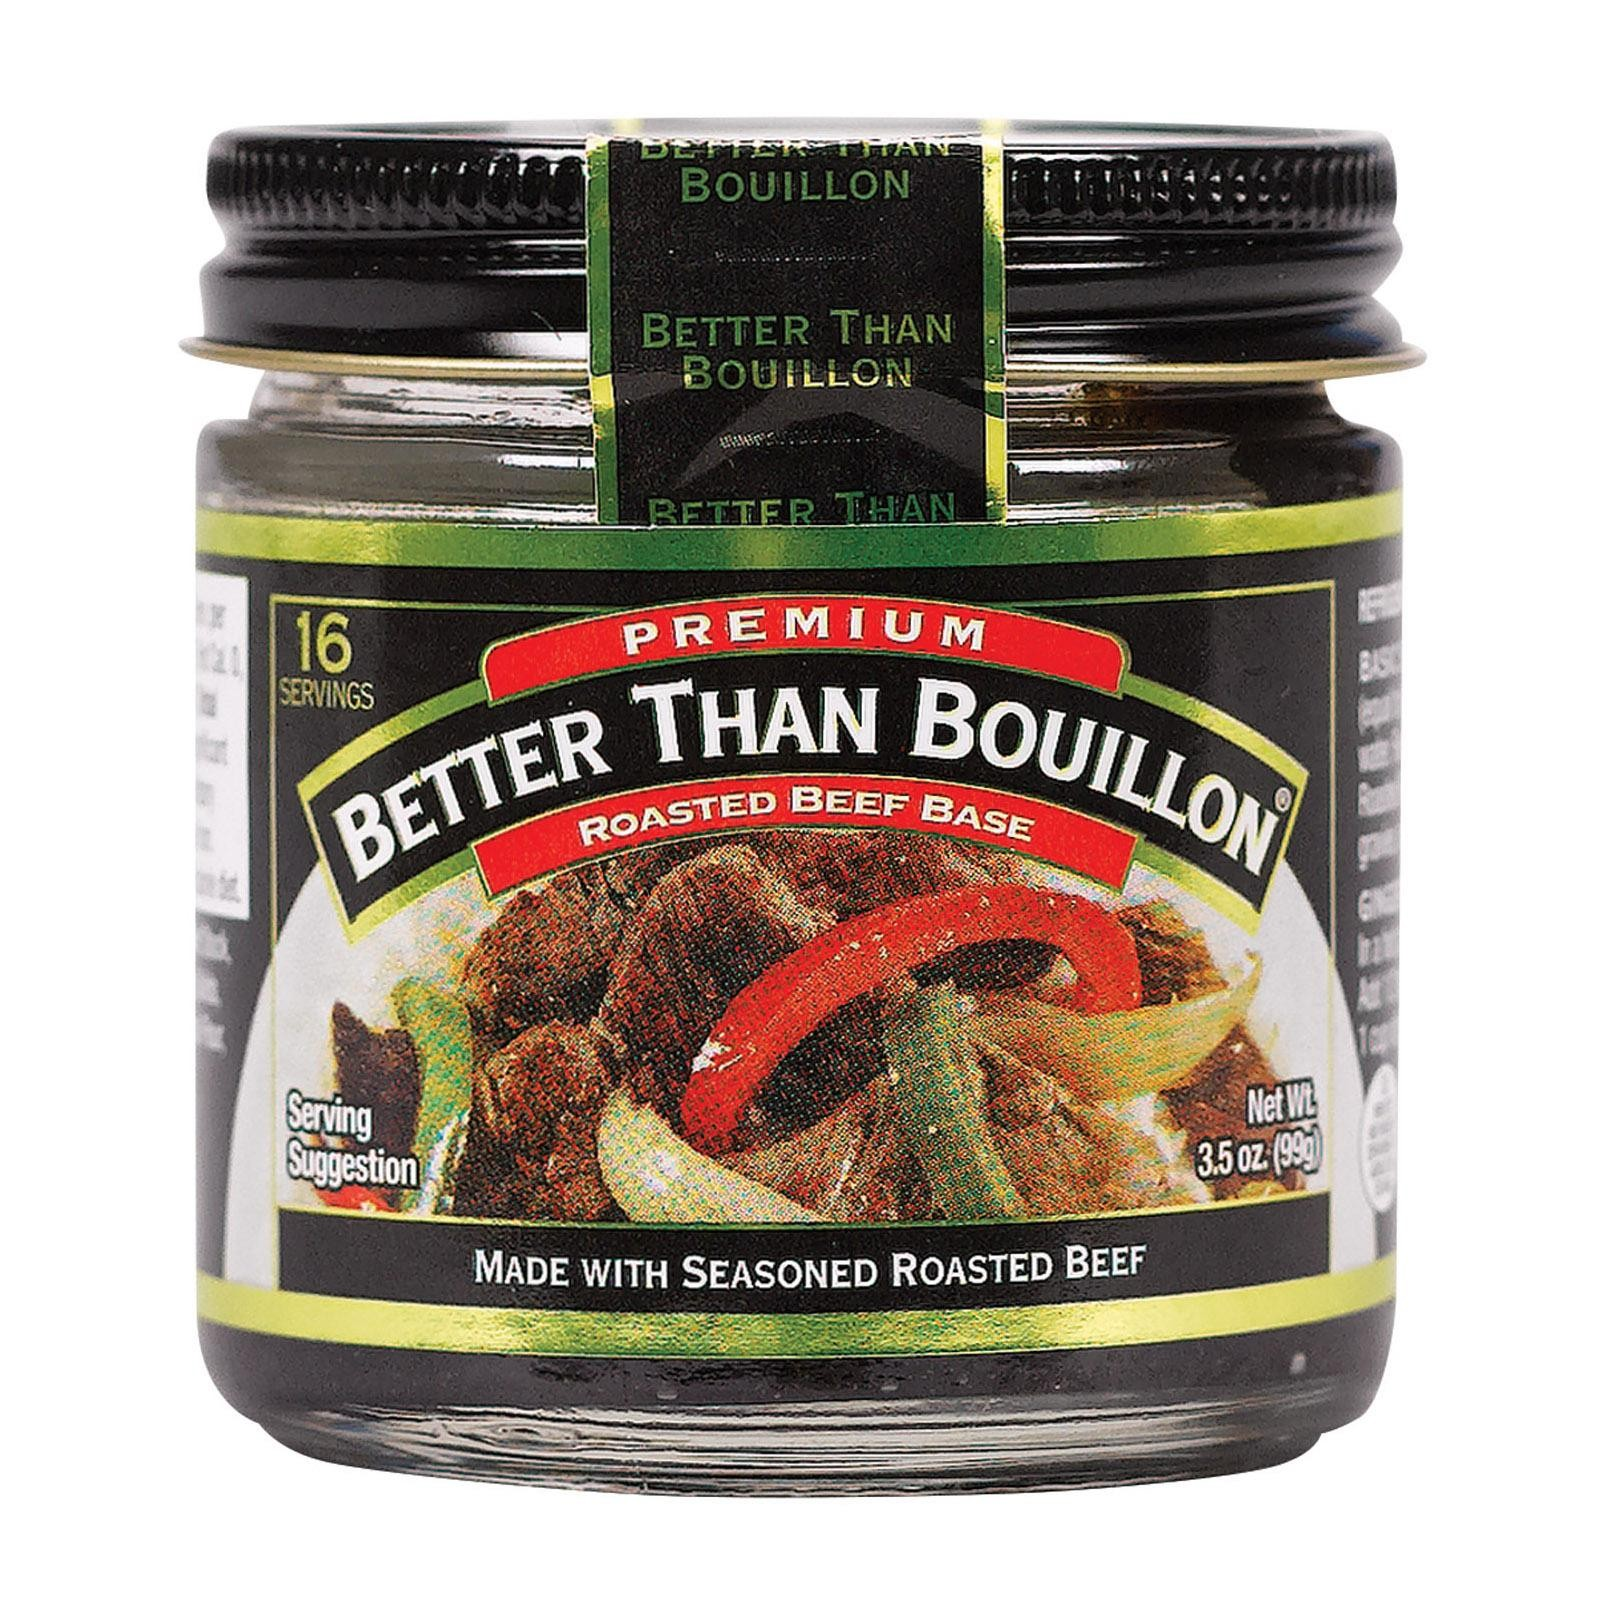 Better Than Bouillon Seasoning - Roasted Beef Base - pack of 8 - 3.5 Oz.